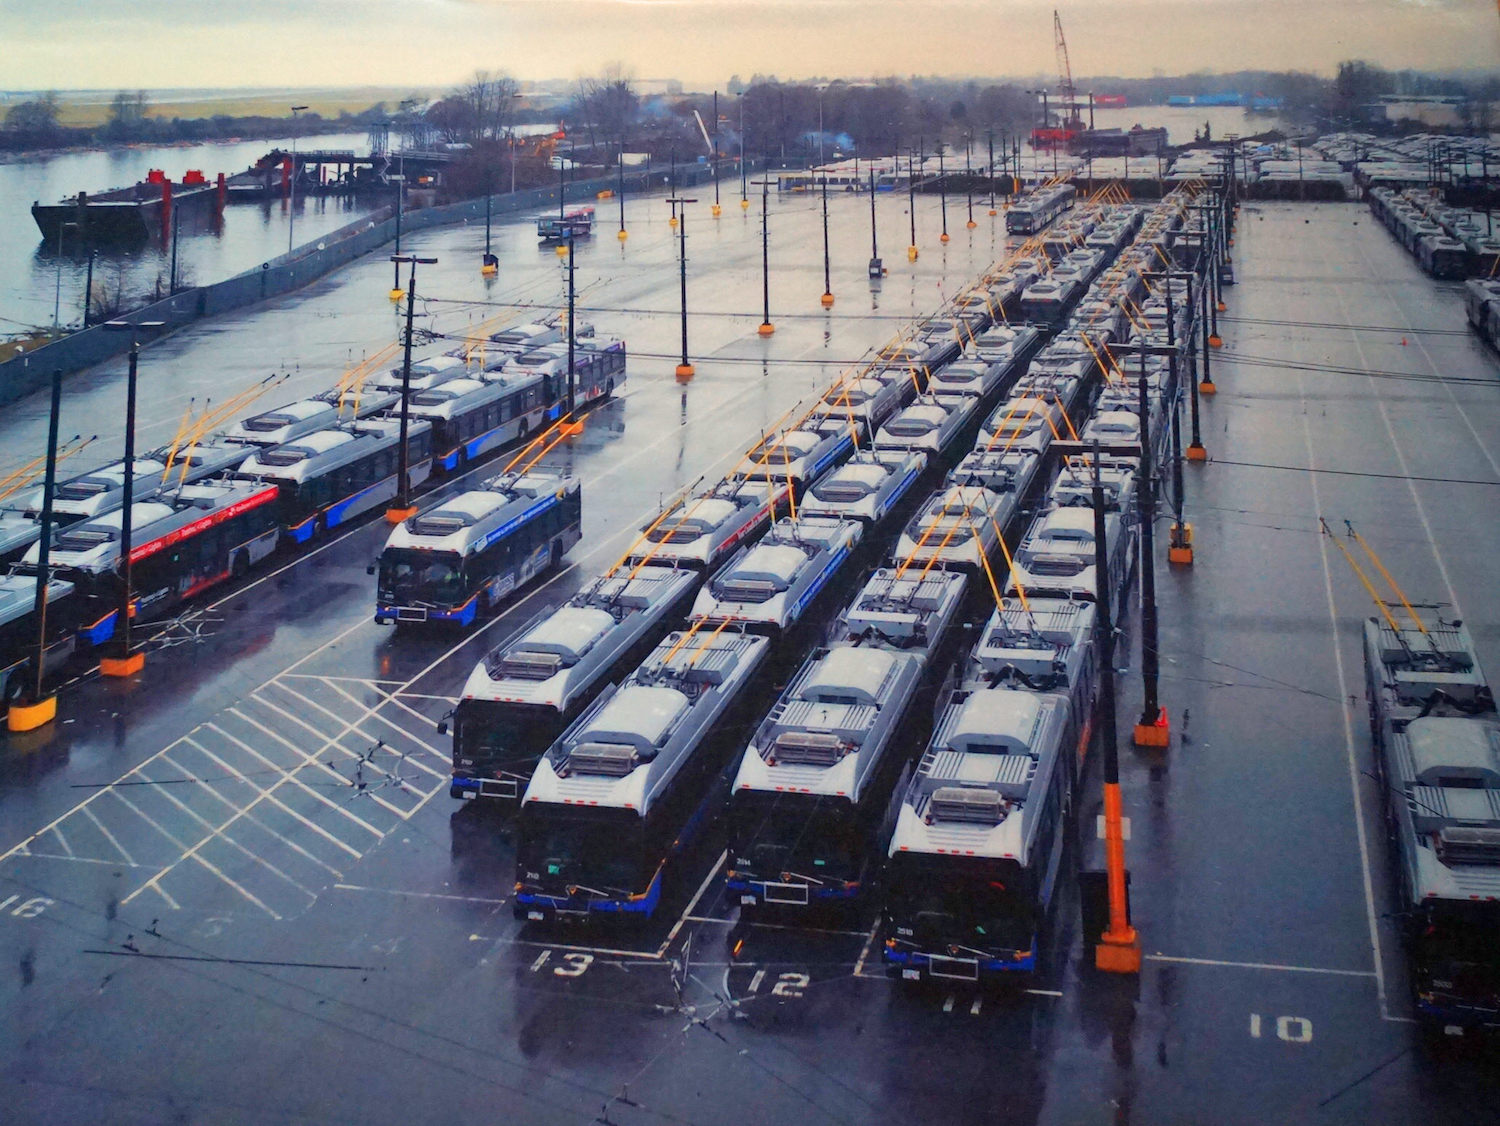 Bus Yard / North Arm, Fraser River, British Columbia